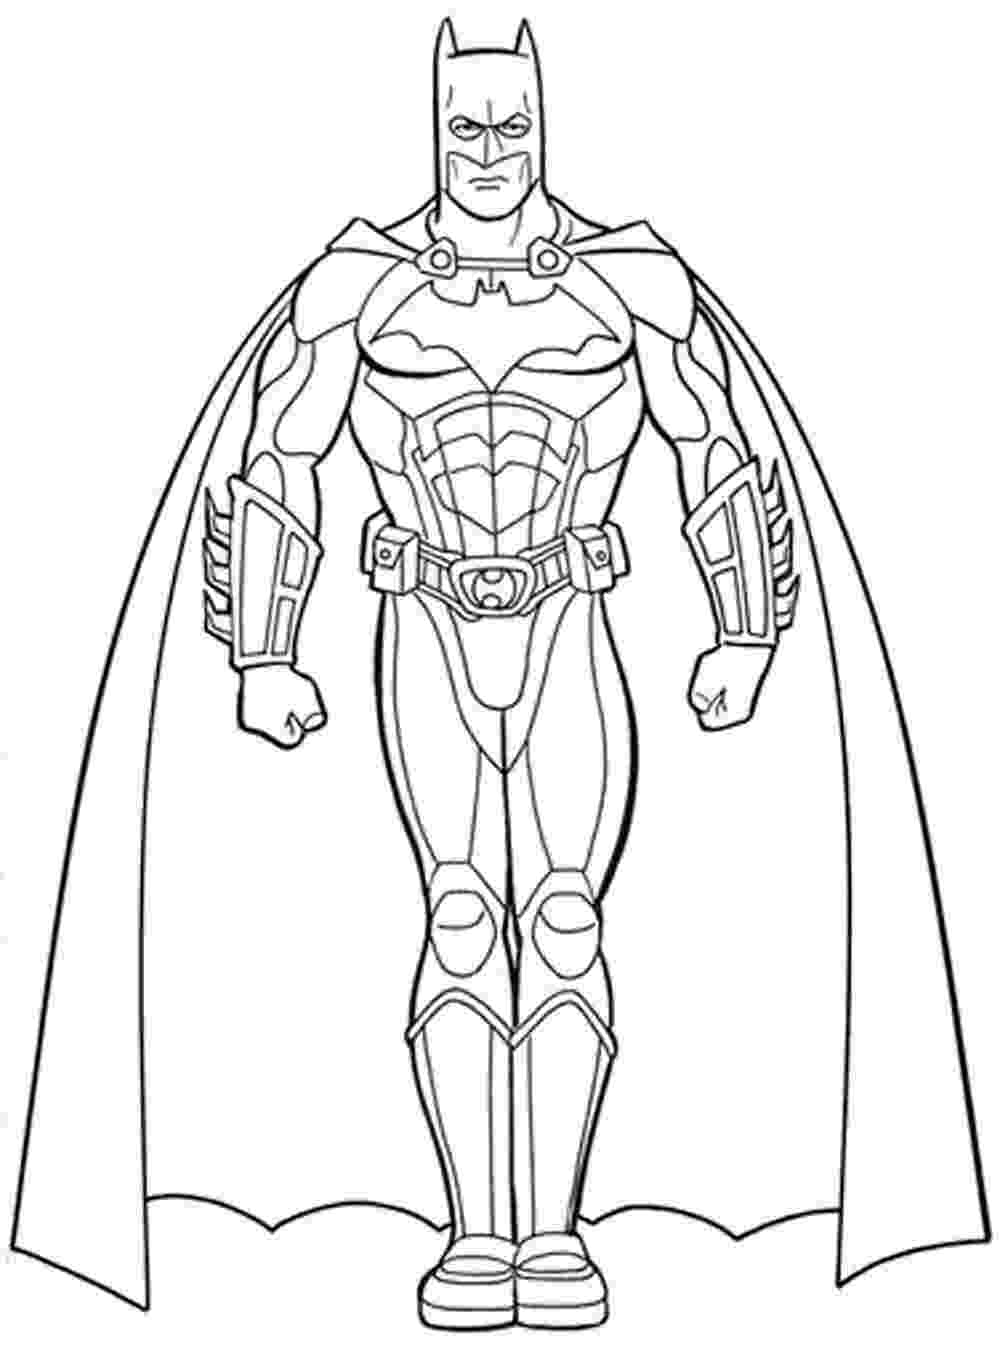 batman coloring sheets printable batman super hero cartoon coloring pages coloring batman printable sheets